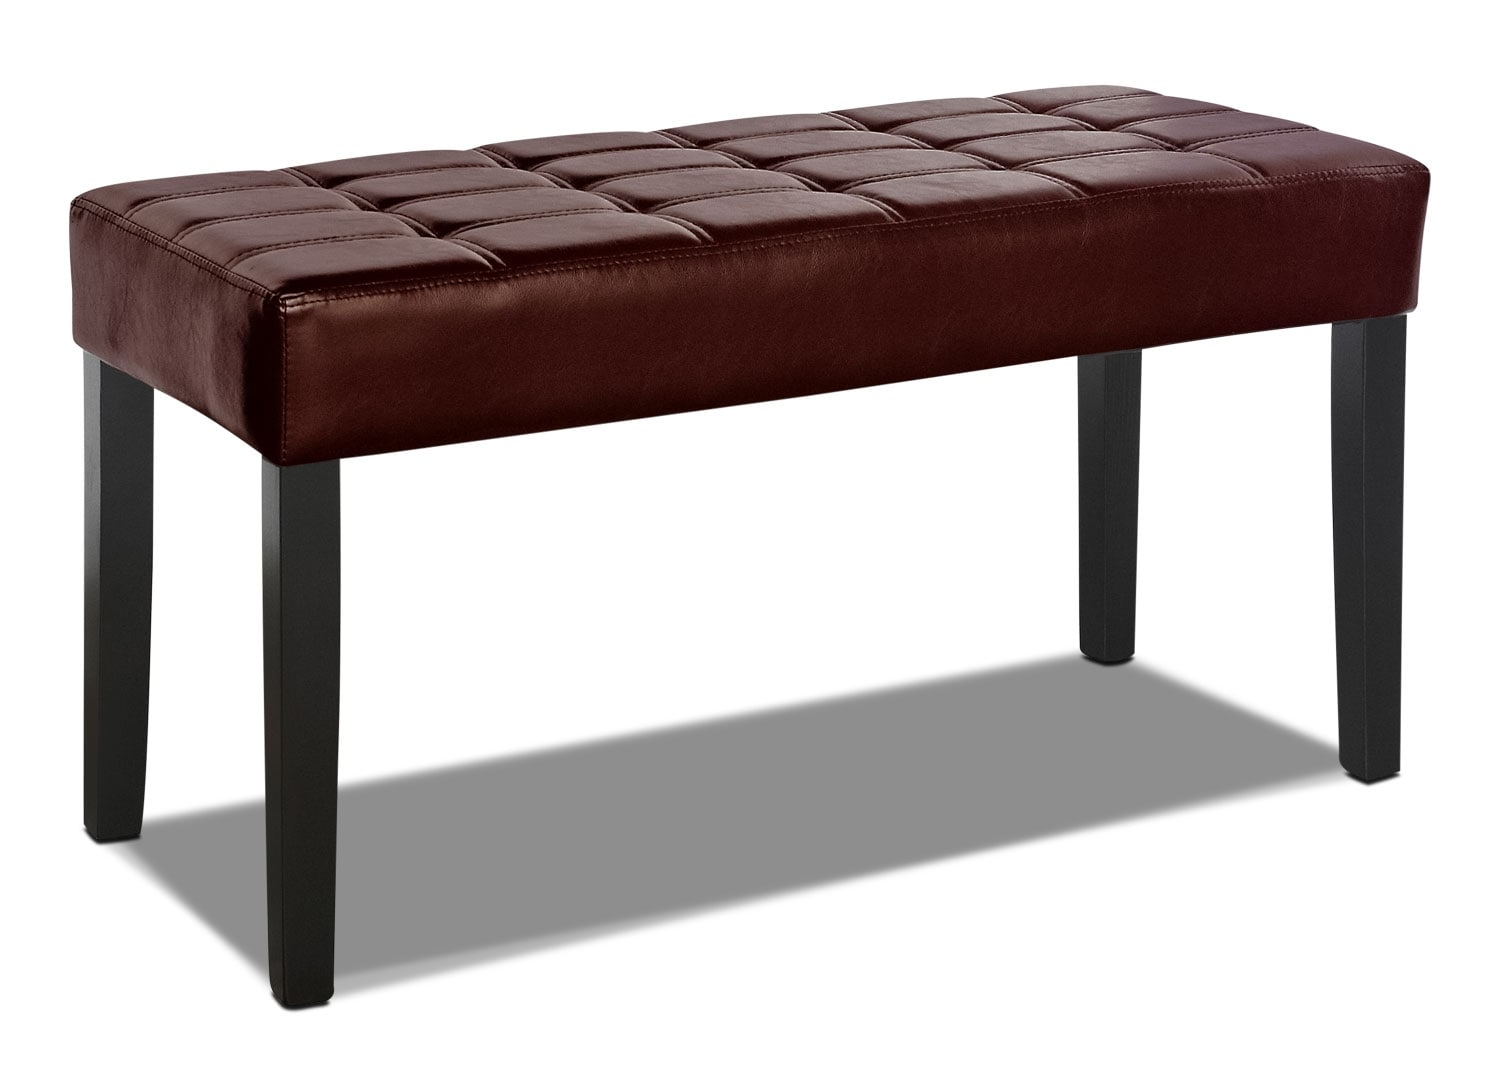 Accent and Occasional Furniture - Cali Tufted Bench – Brown